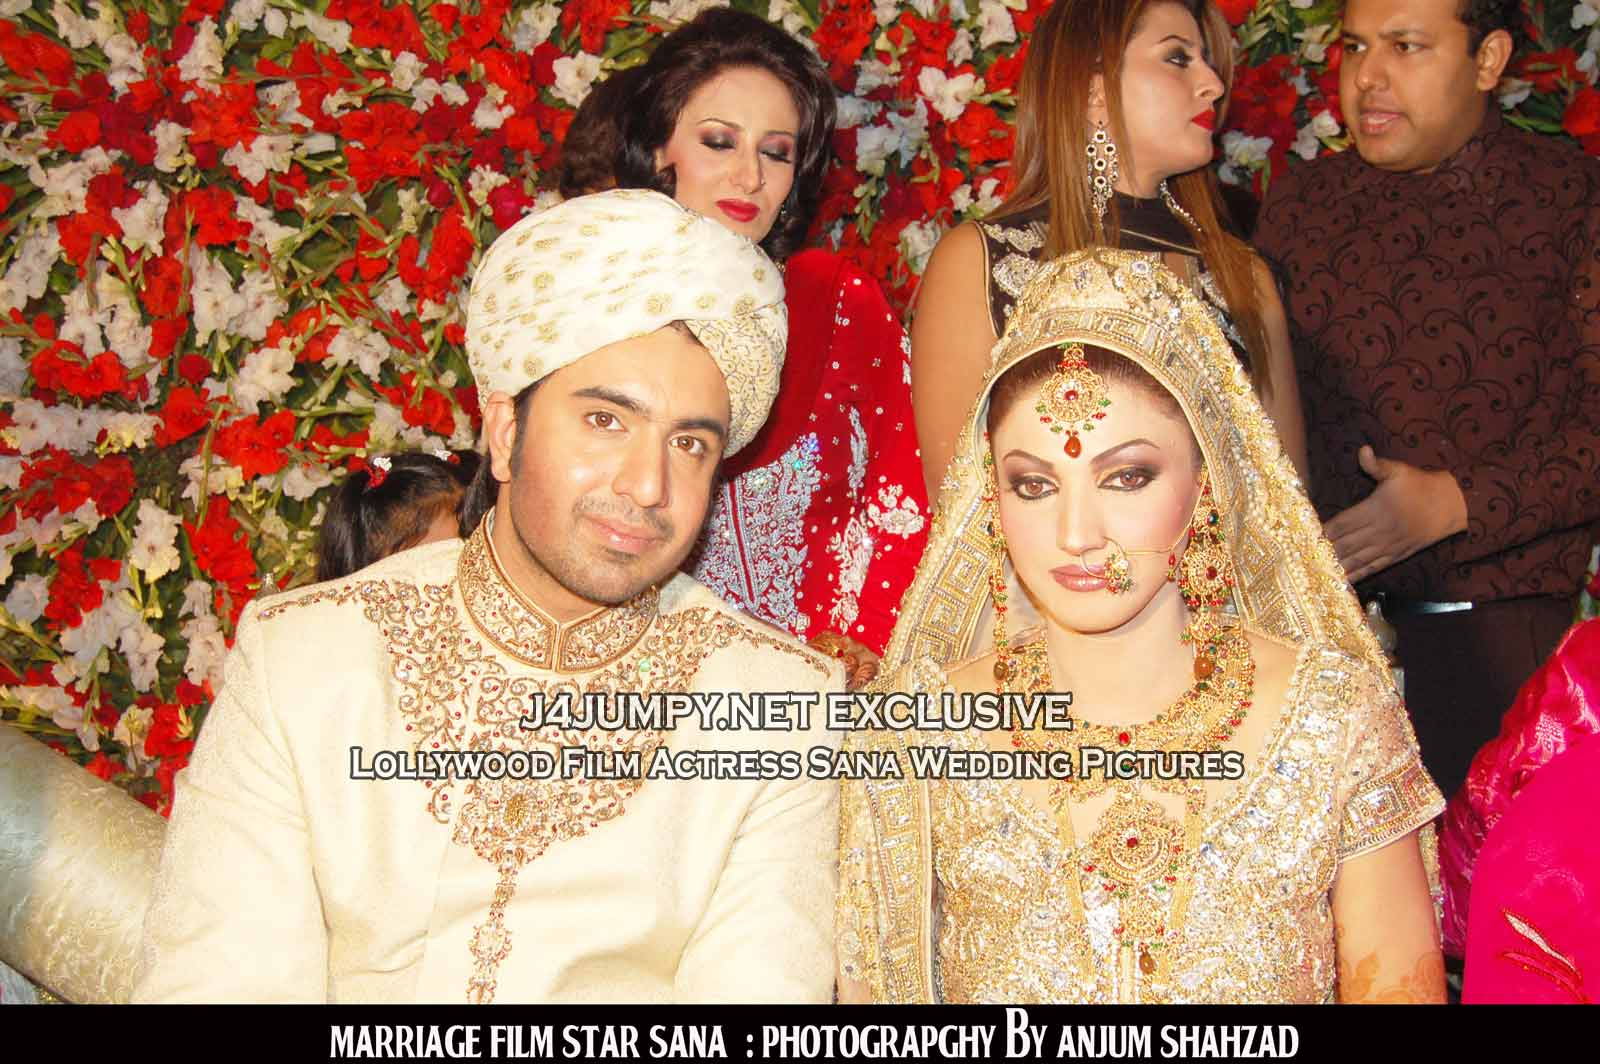 http://j4jumpy.net/wp-content/uploads/2008/12/sana_lollywood_actress_wedding_01.jpg